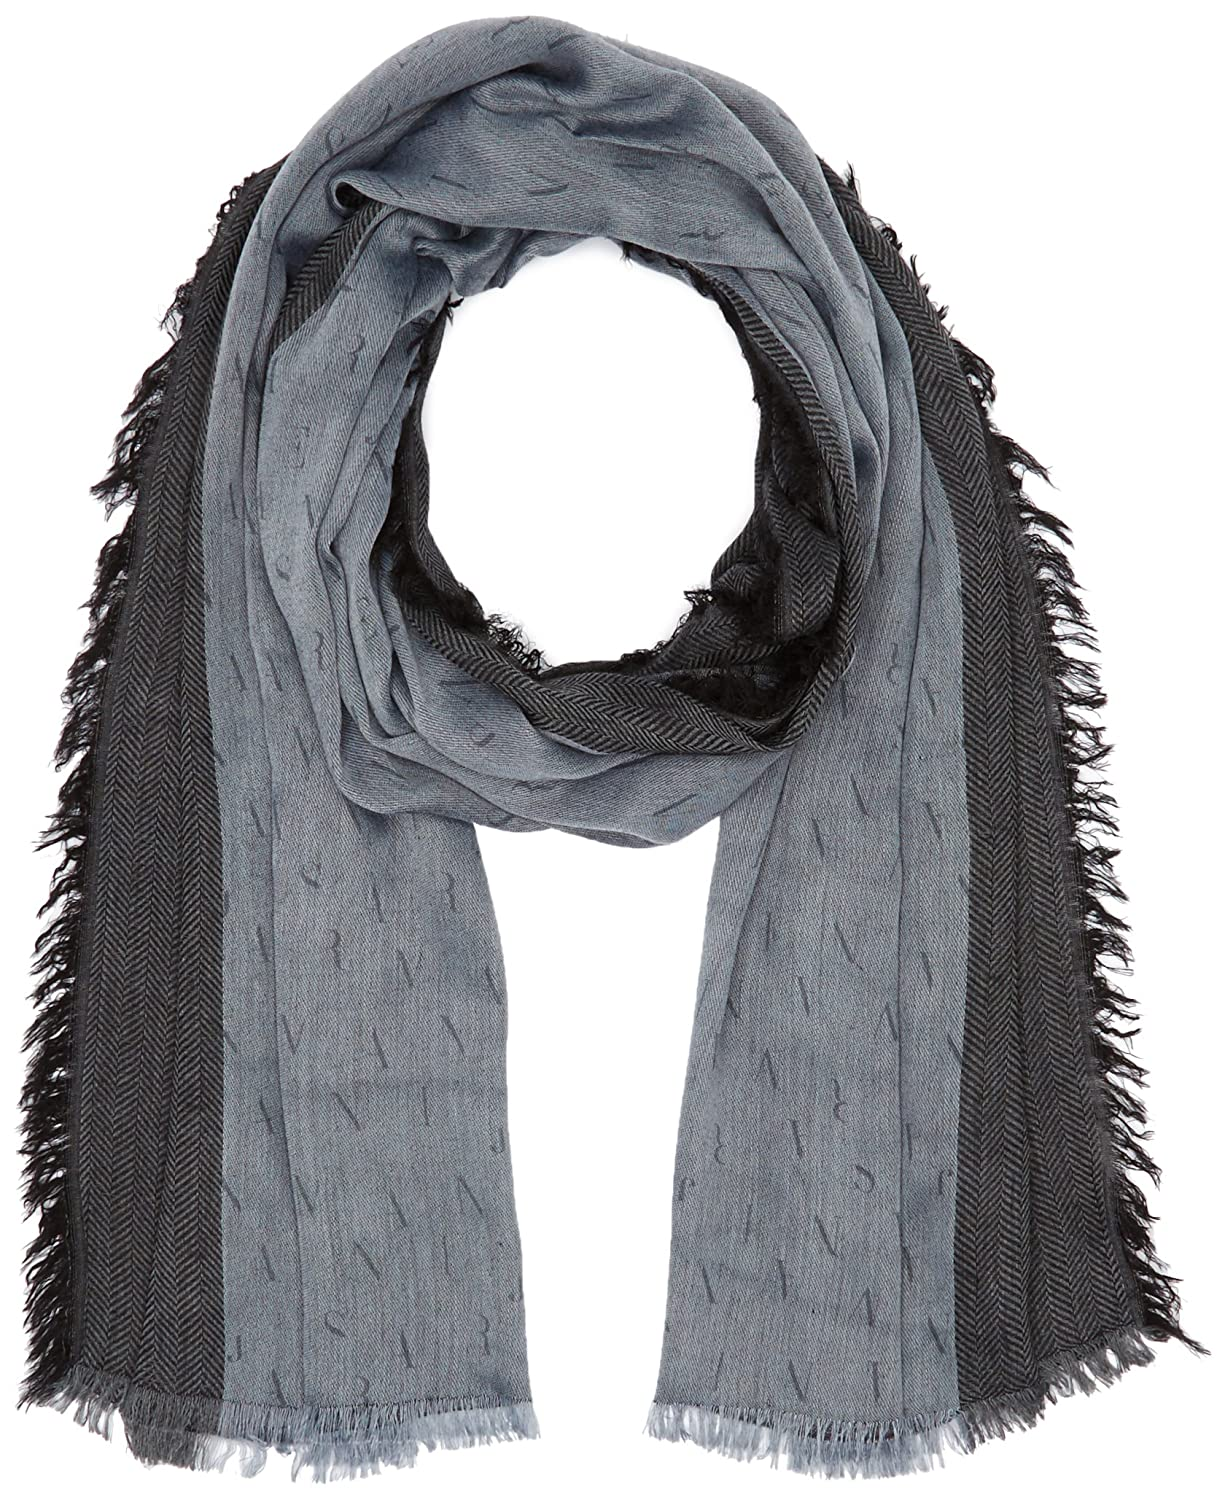 Armani Jeans Men's All Over Eagle Print Scarf Frost Grey One Size Armani Jeans Men' s Accessories 934022-6A713